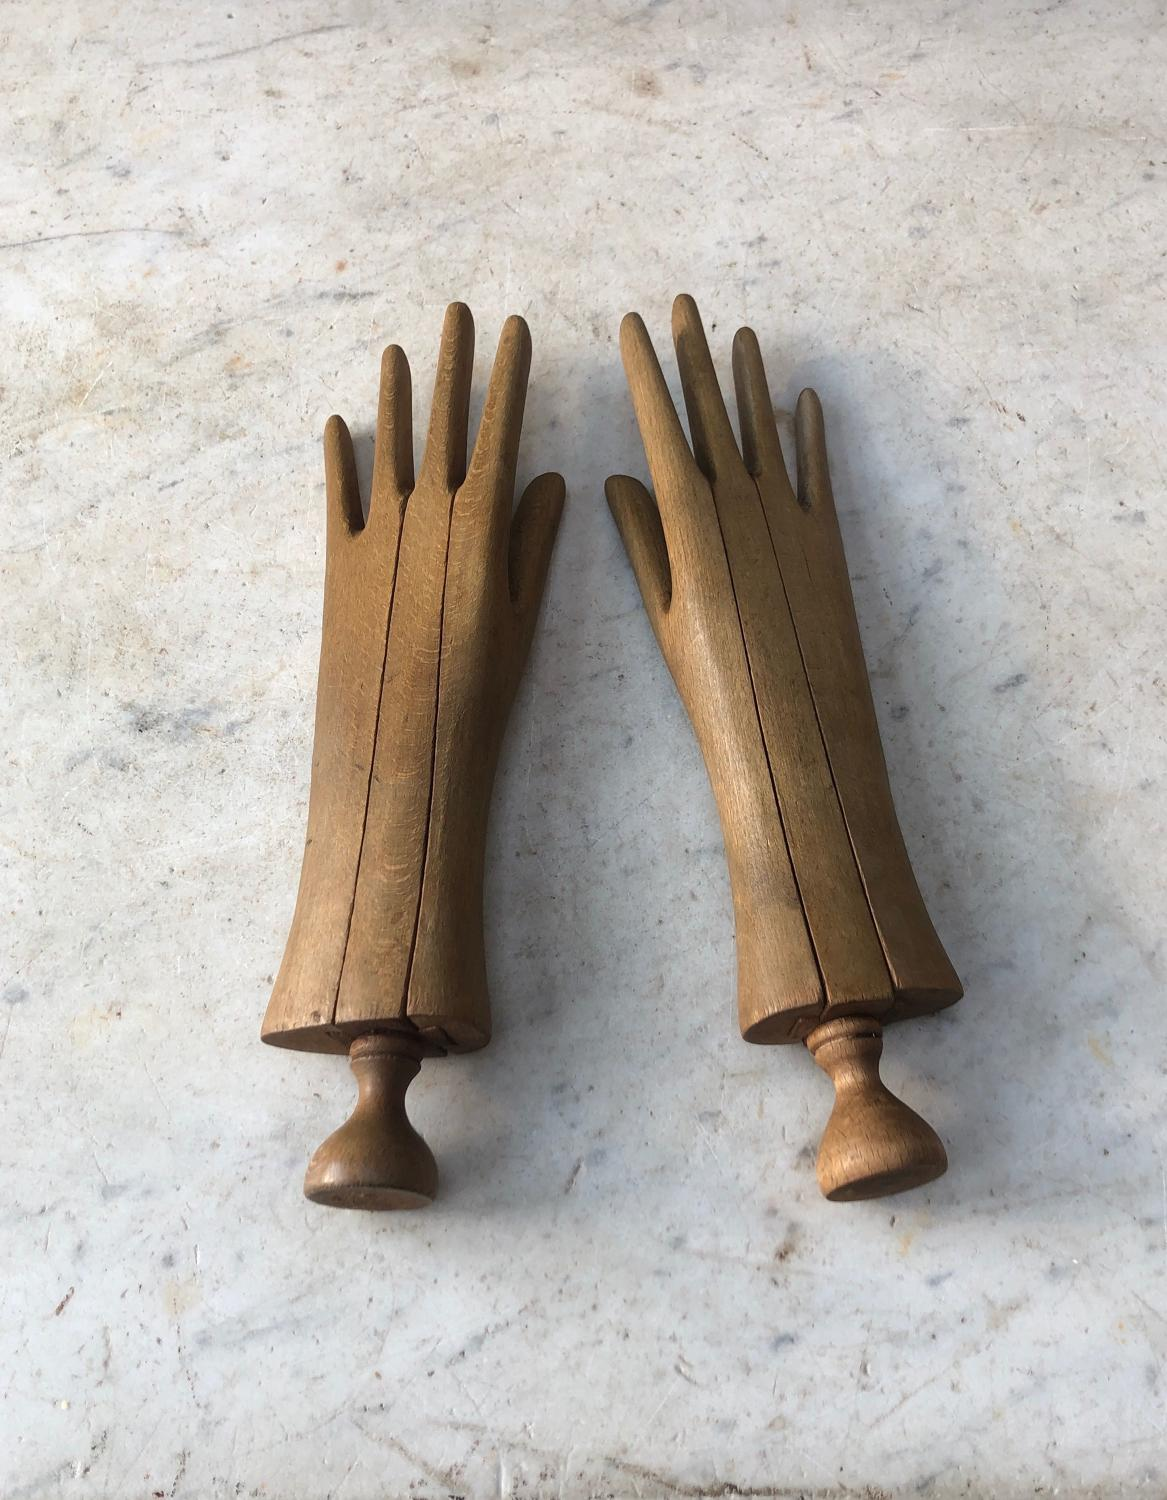 Rare Pair of Late Victorian Treen Glove Driers - Stretchers